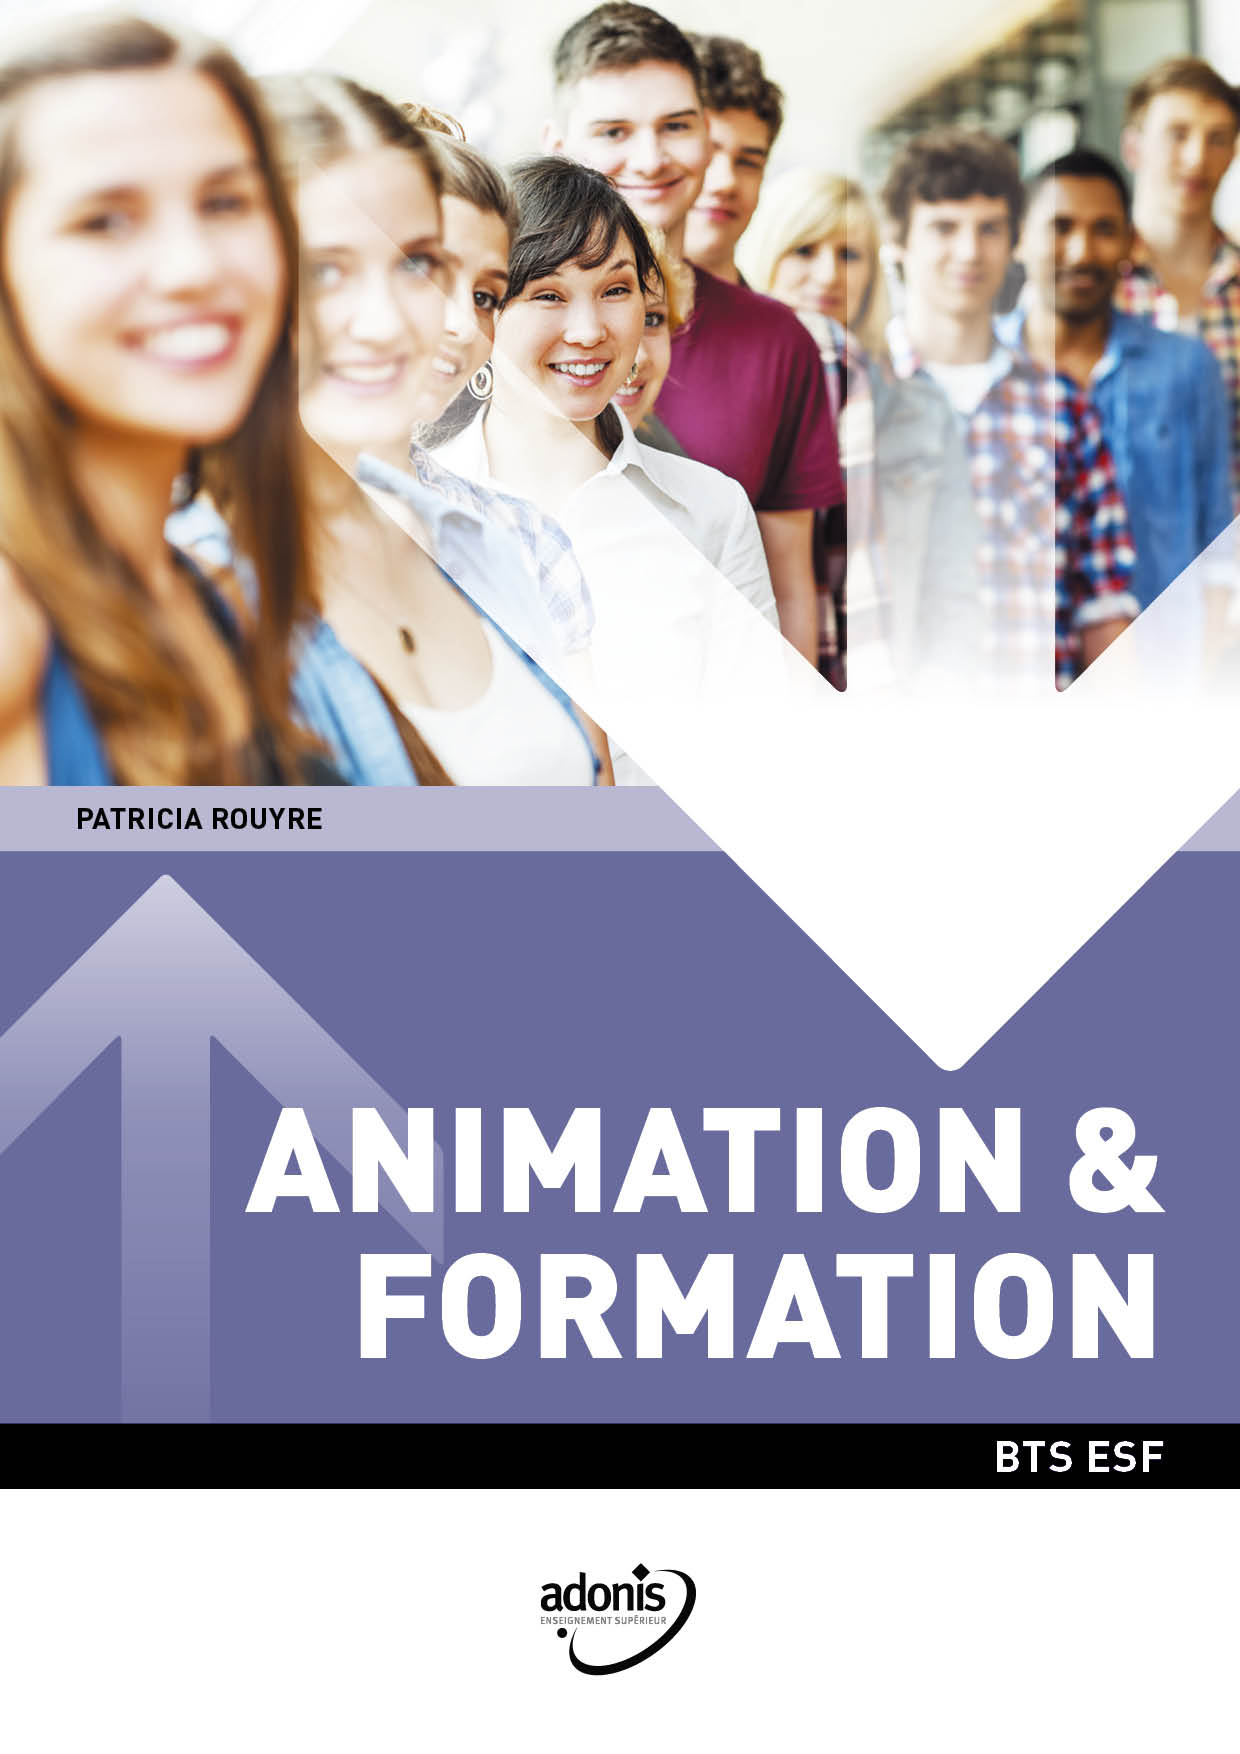 BTS ESF - Animation Formation